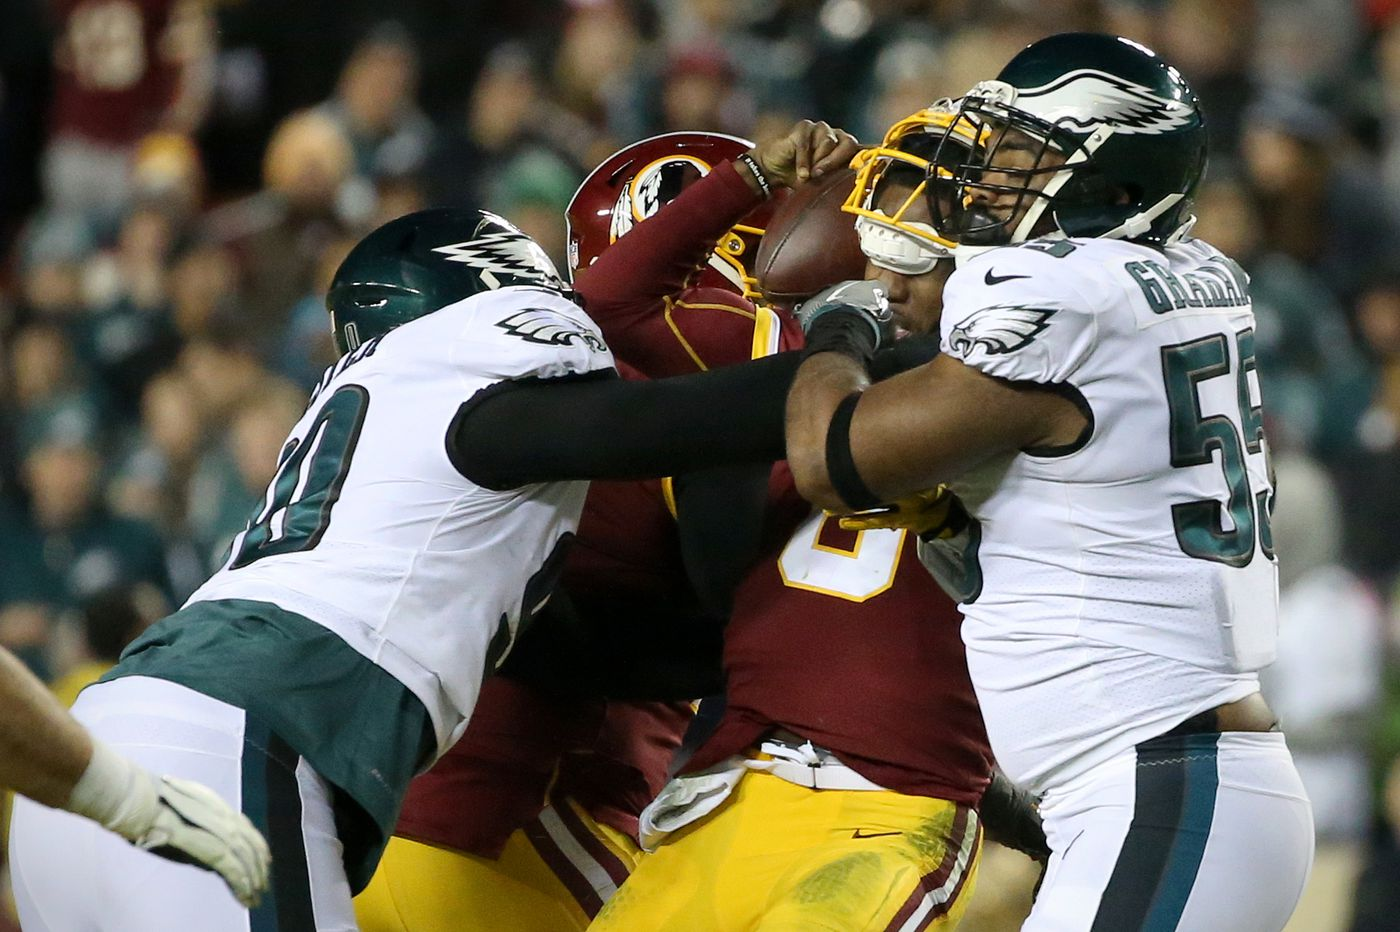 Sports betting: Week 1 NFL lines are out, and the Eagles are solid favorites over the Redskins